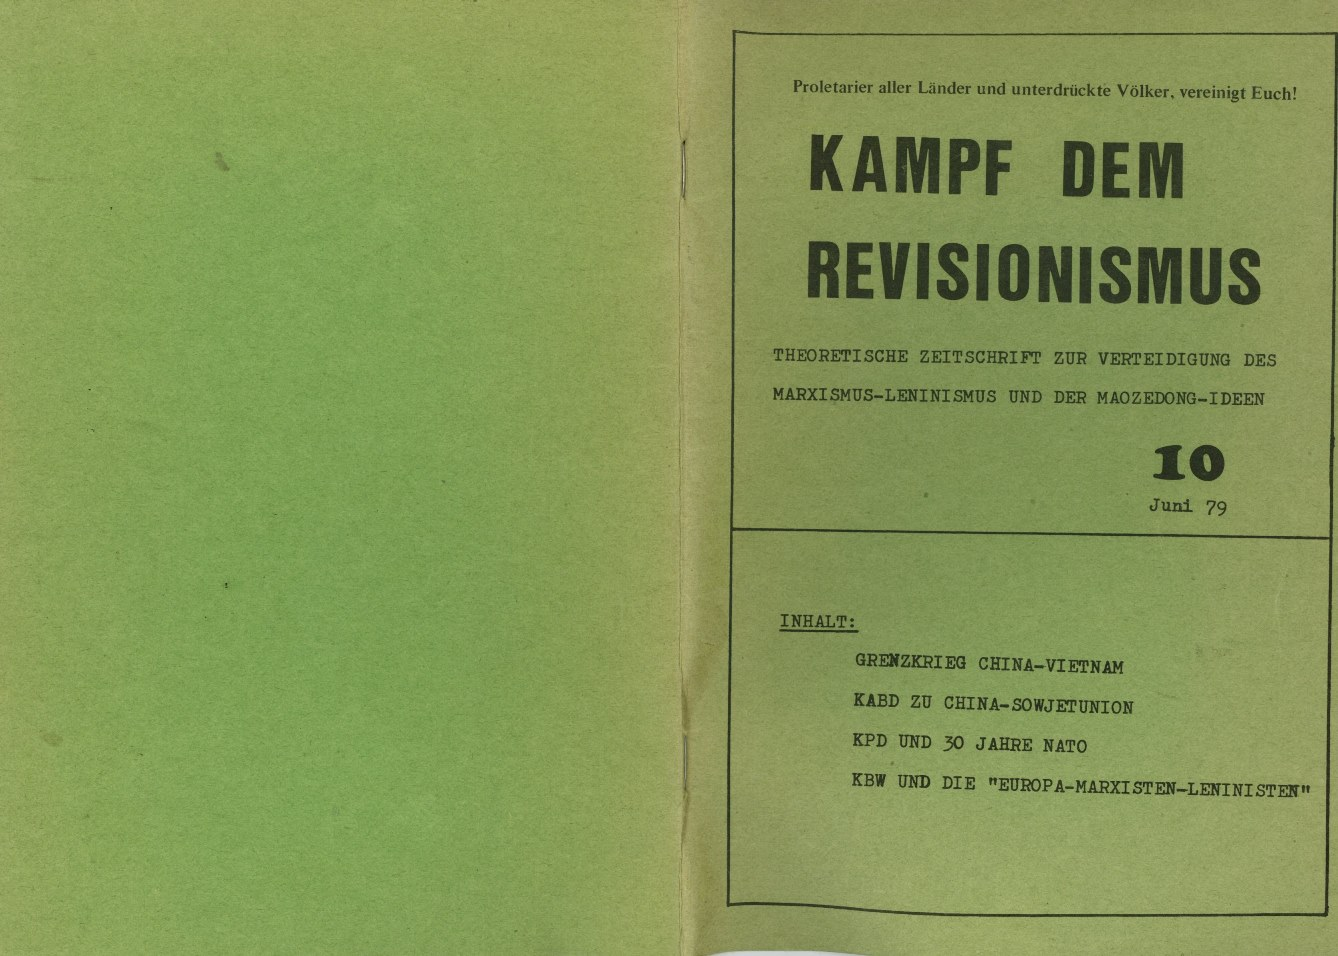 Muenchen_Kampf_dem_Revisionismus_1979_10_01